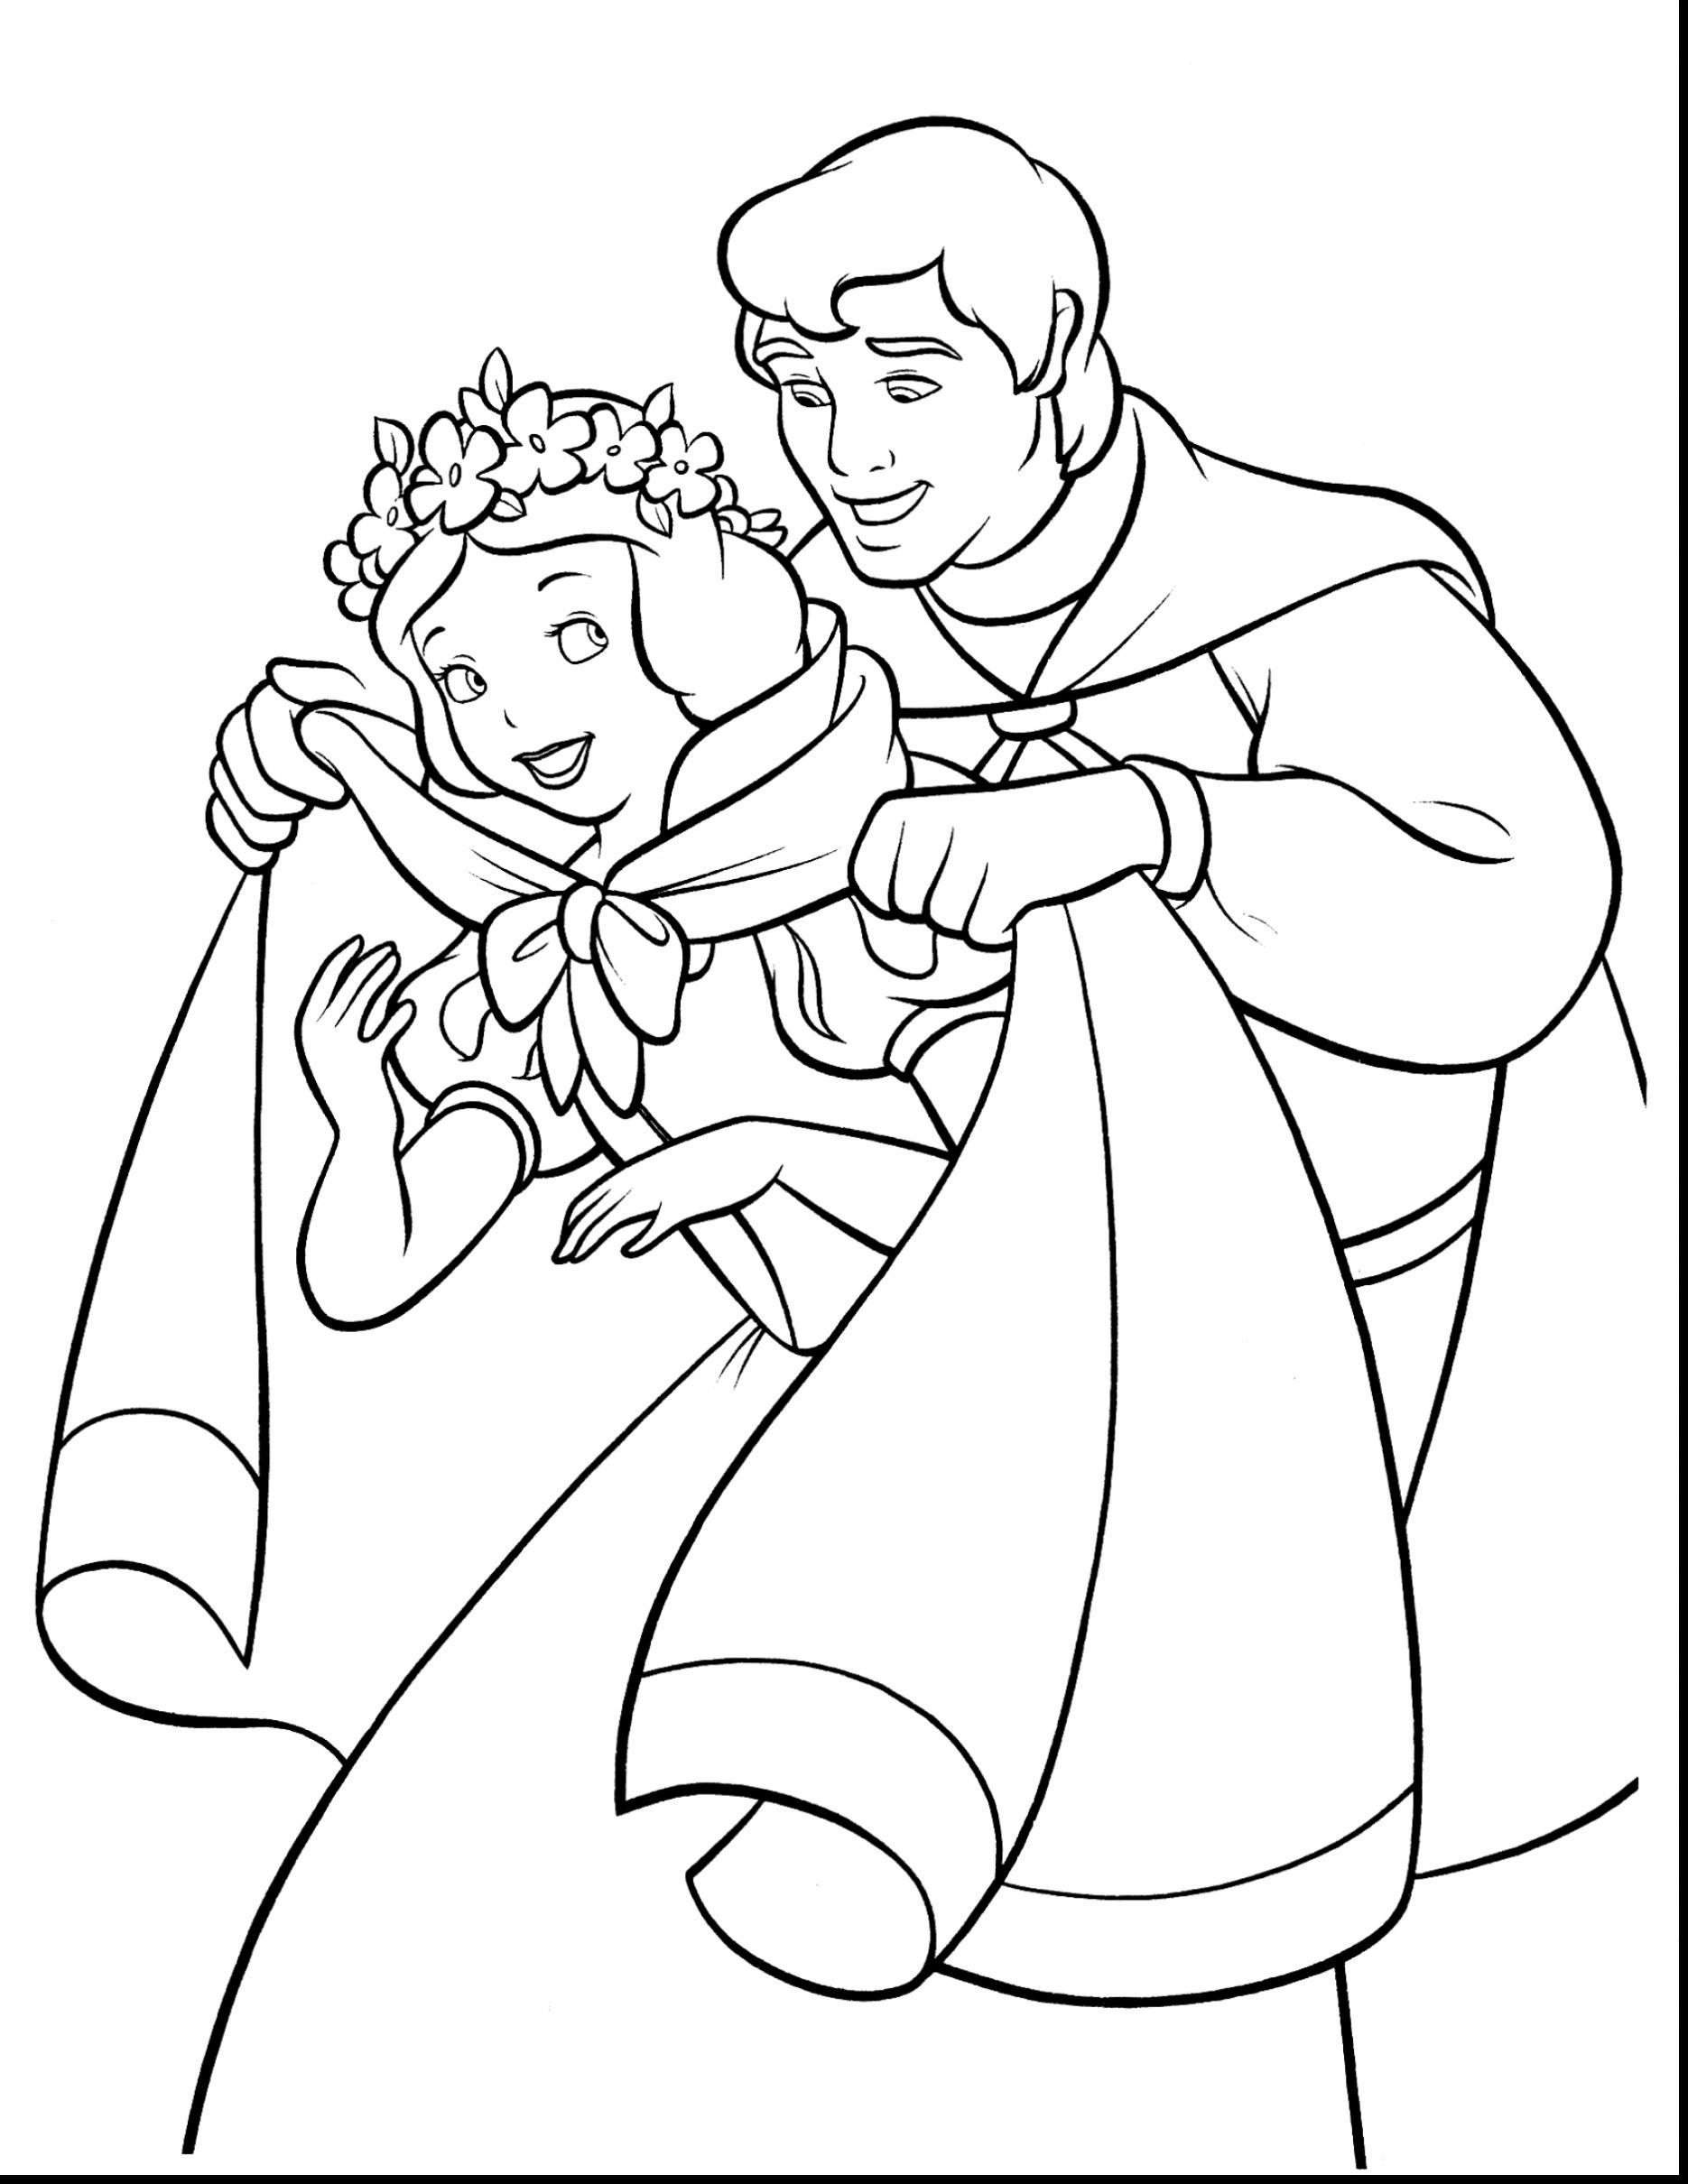 Rapunzel And Pascal Coloring Pages at GetDrawings | Free ...